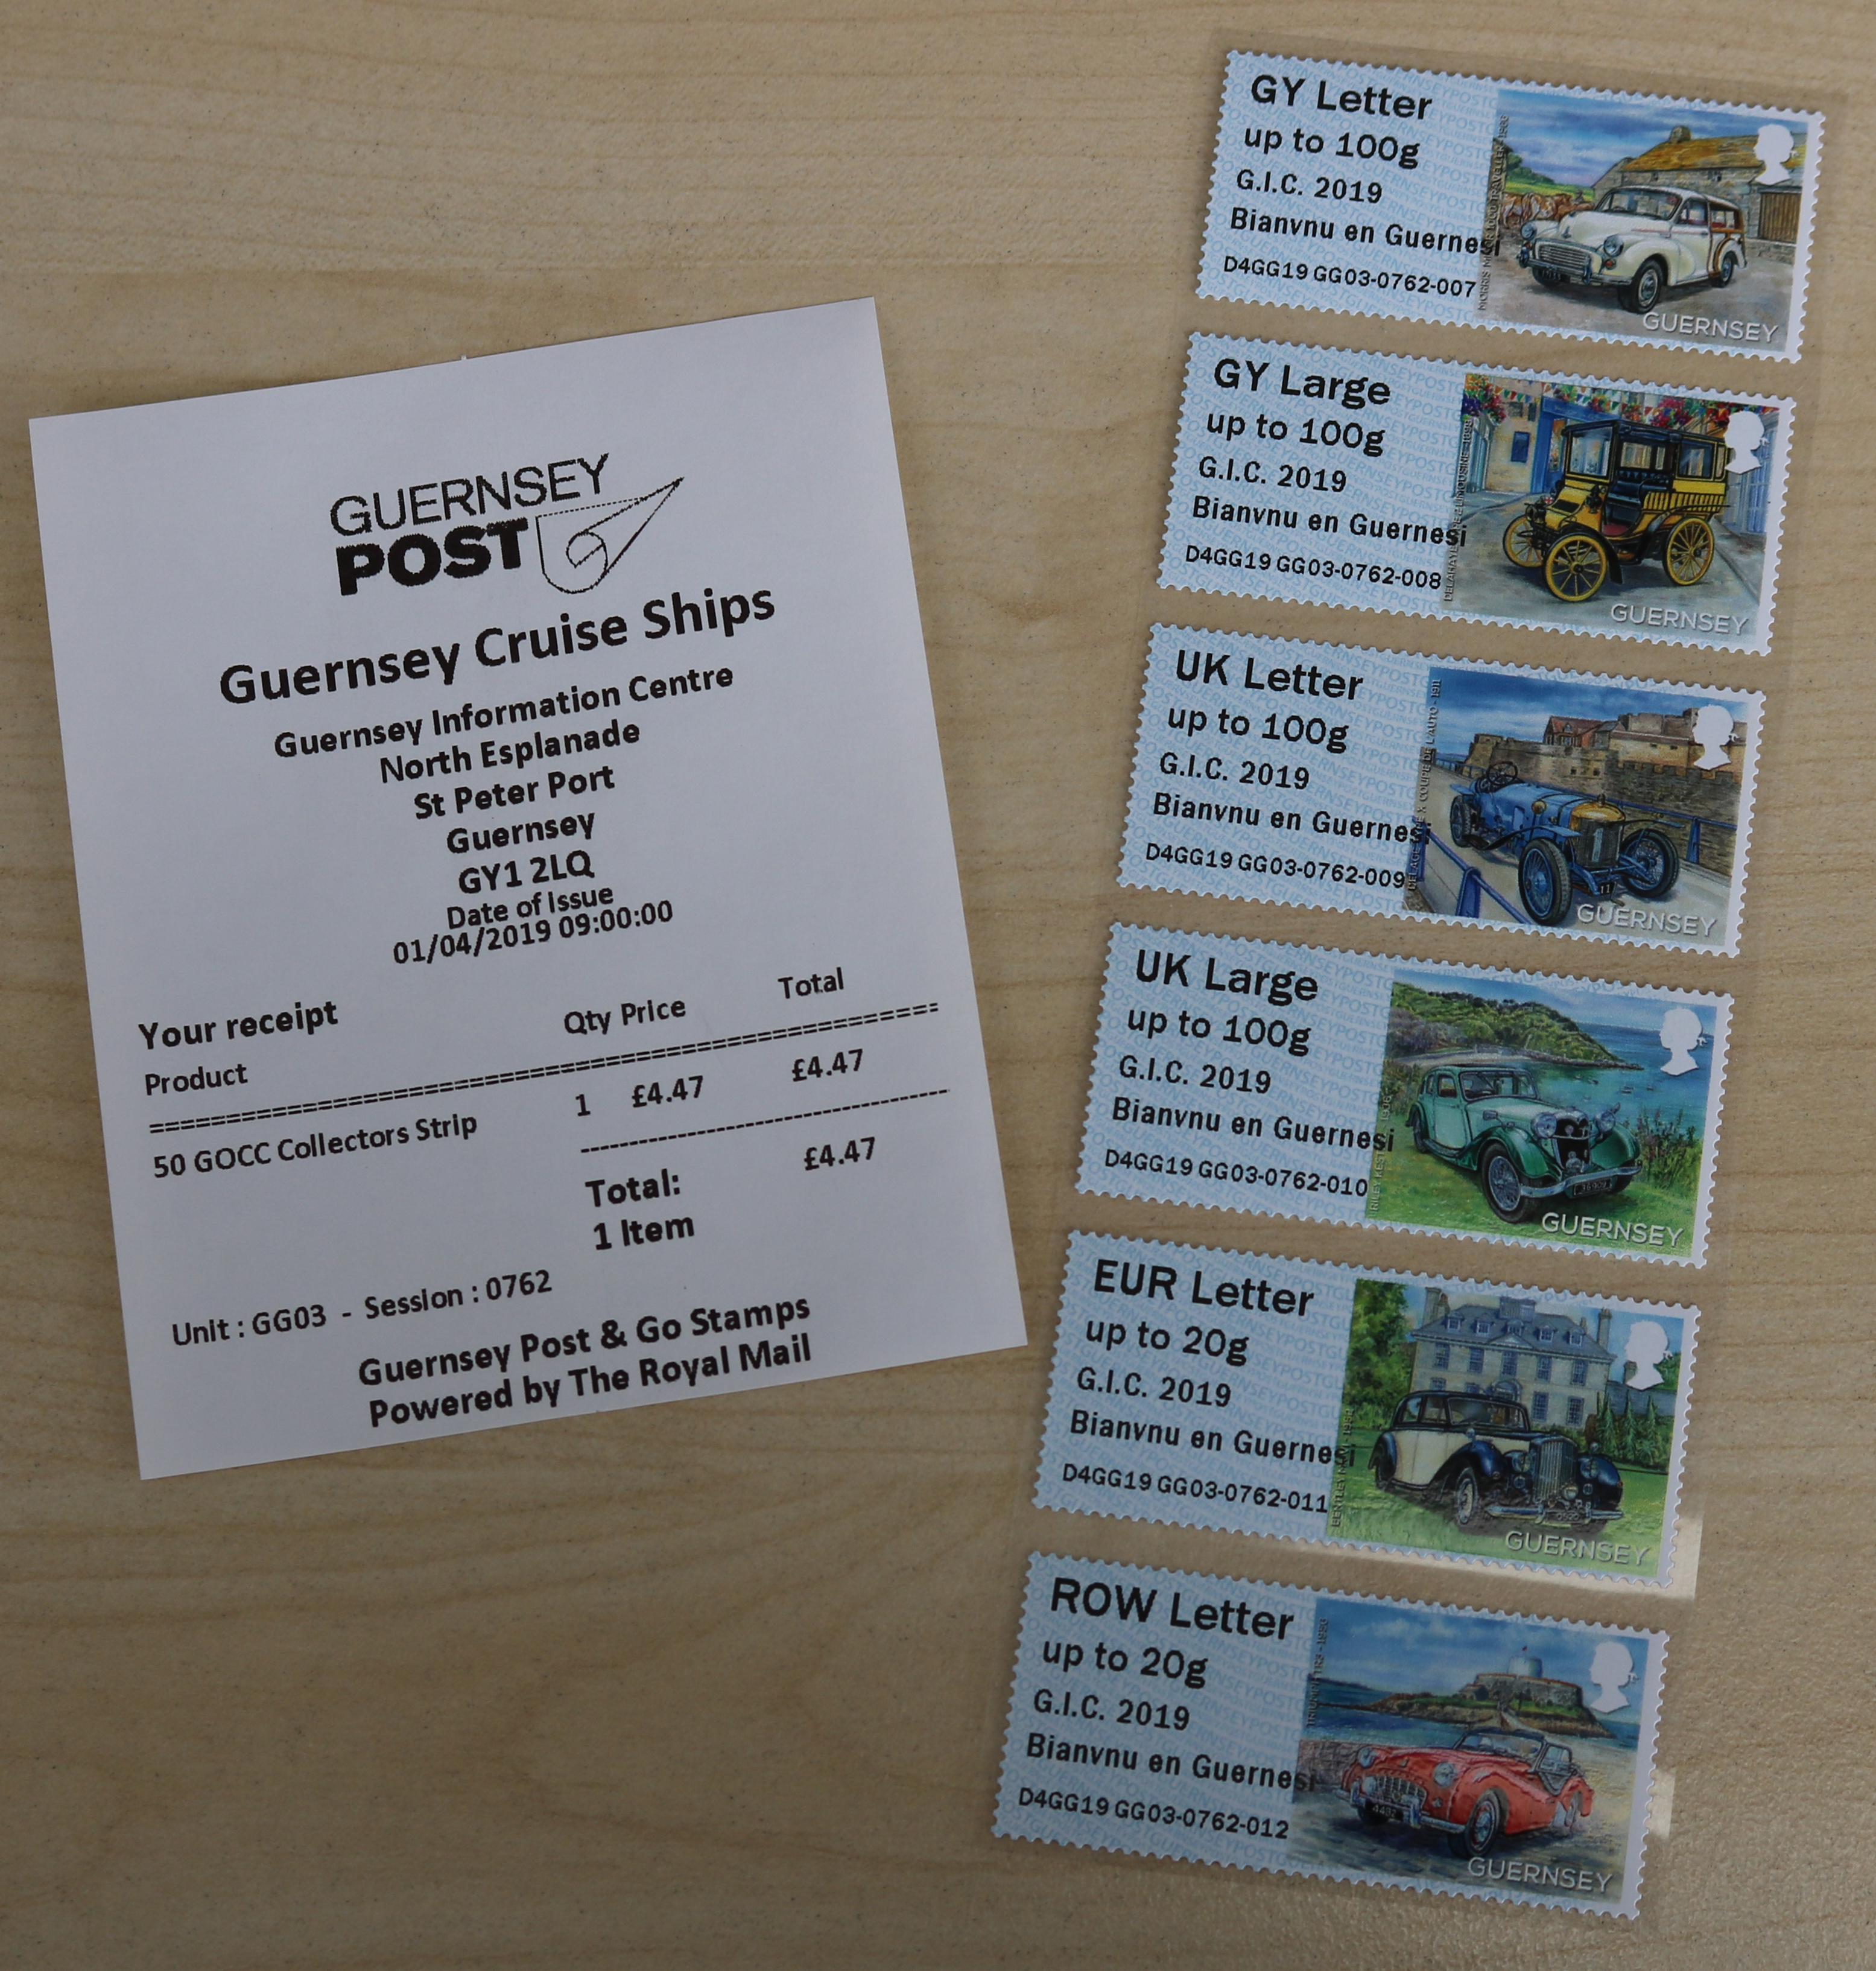 Guernsey Post to vend Post and Go stamps at Guernsey's Tourist Information Centre